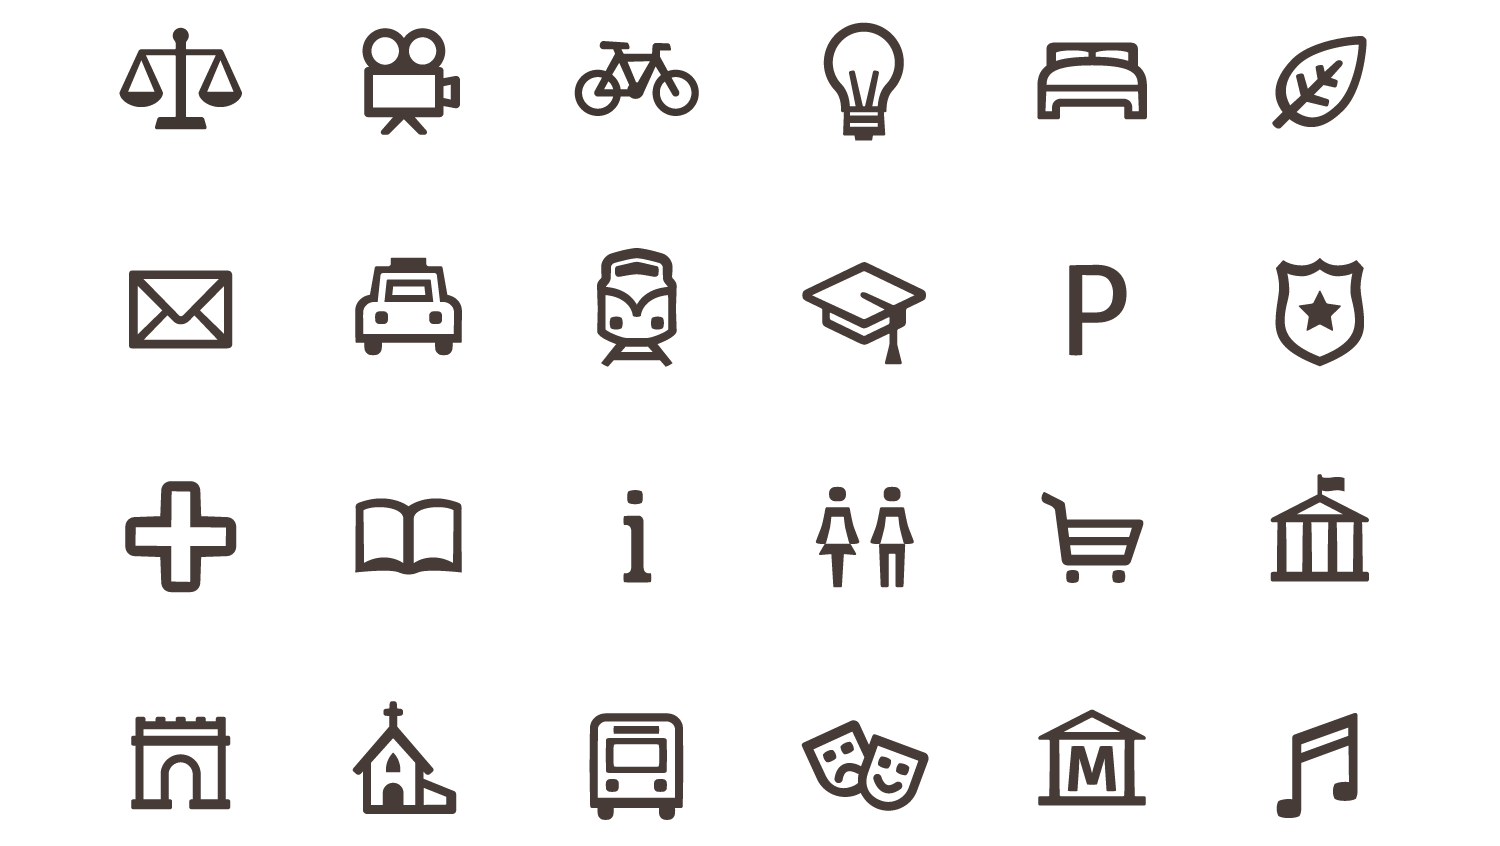 Kielce's Visual Information System - Pictograms and Icons Design